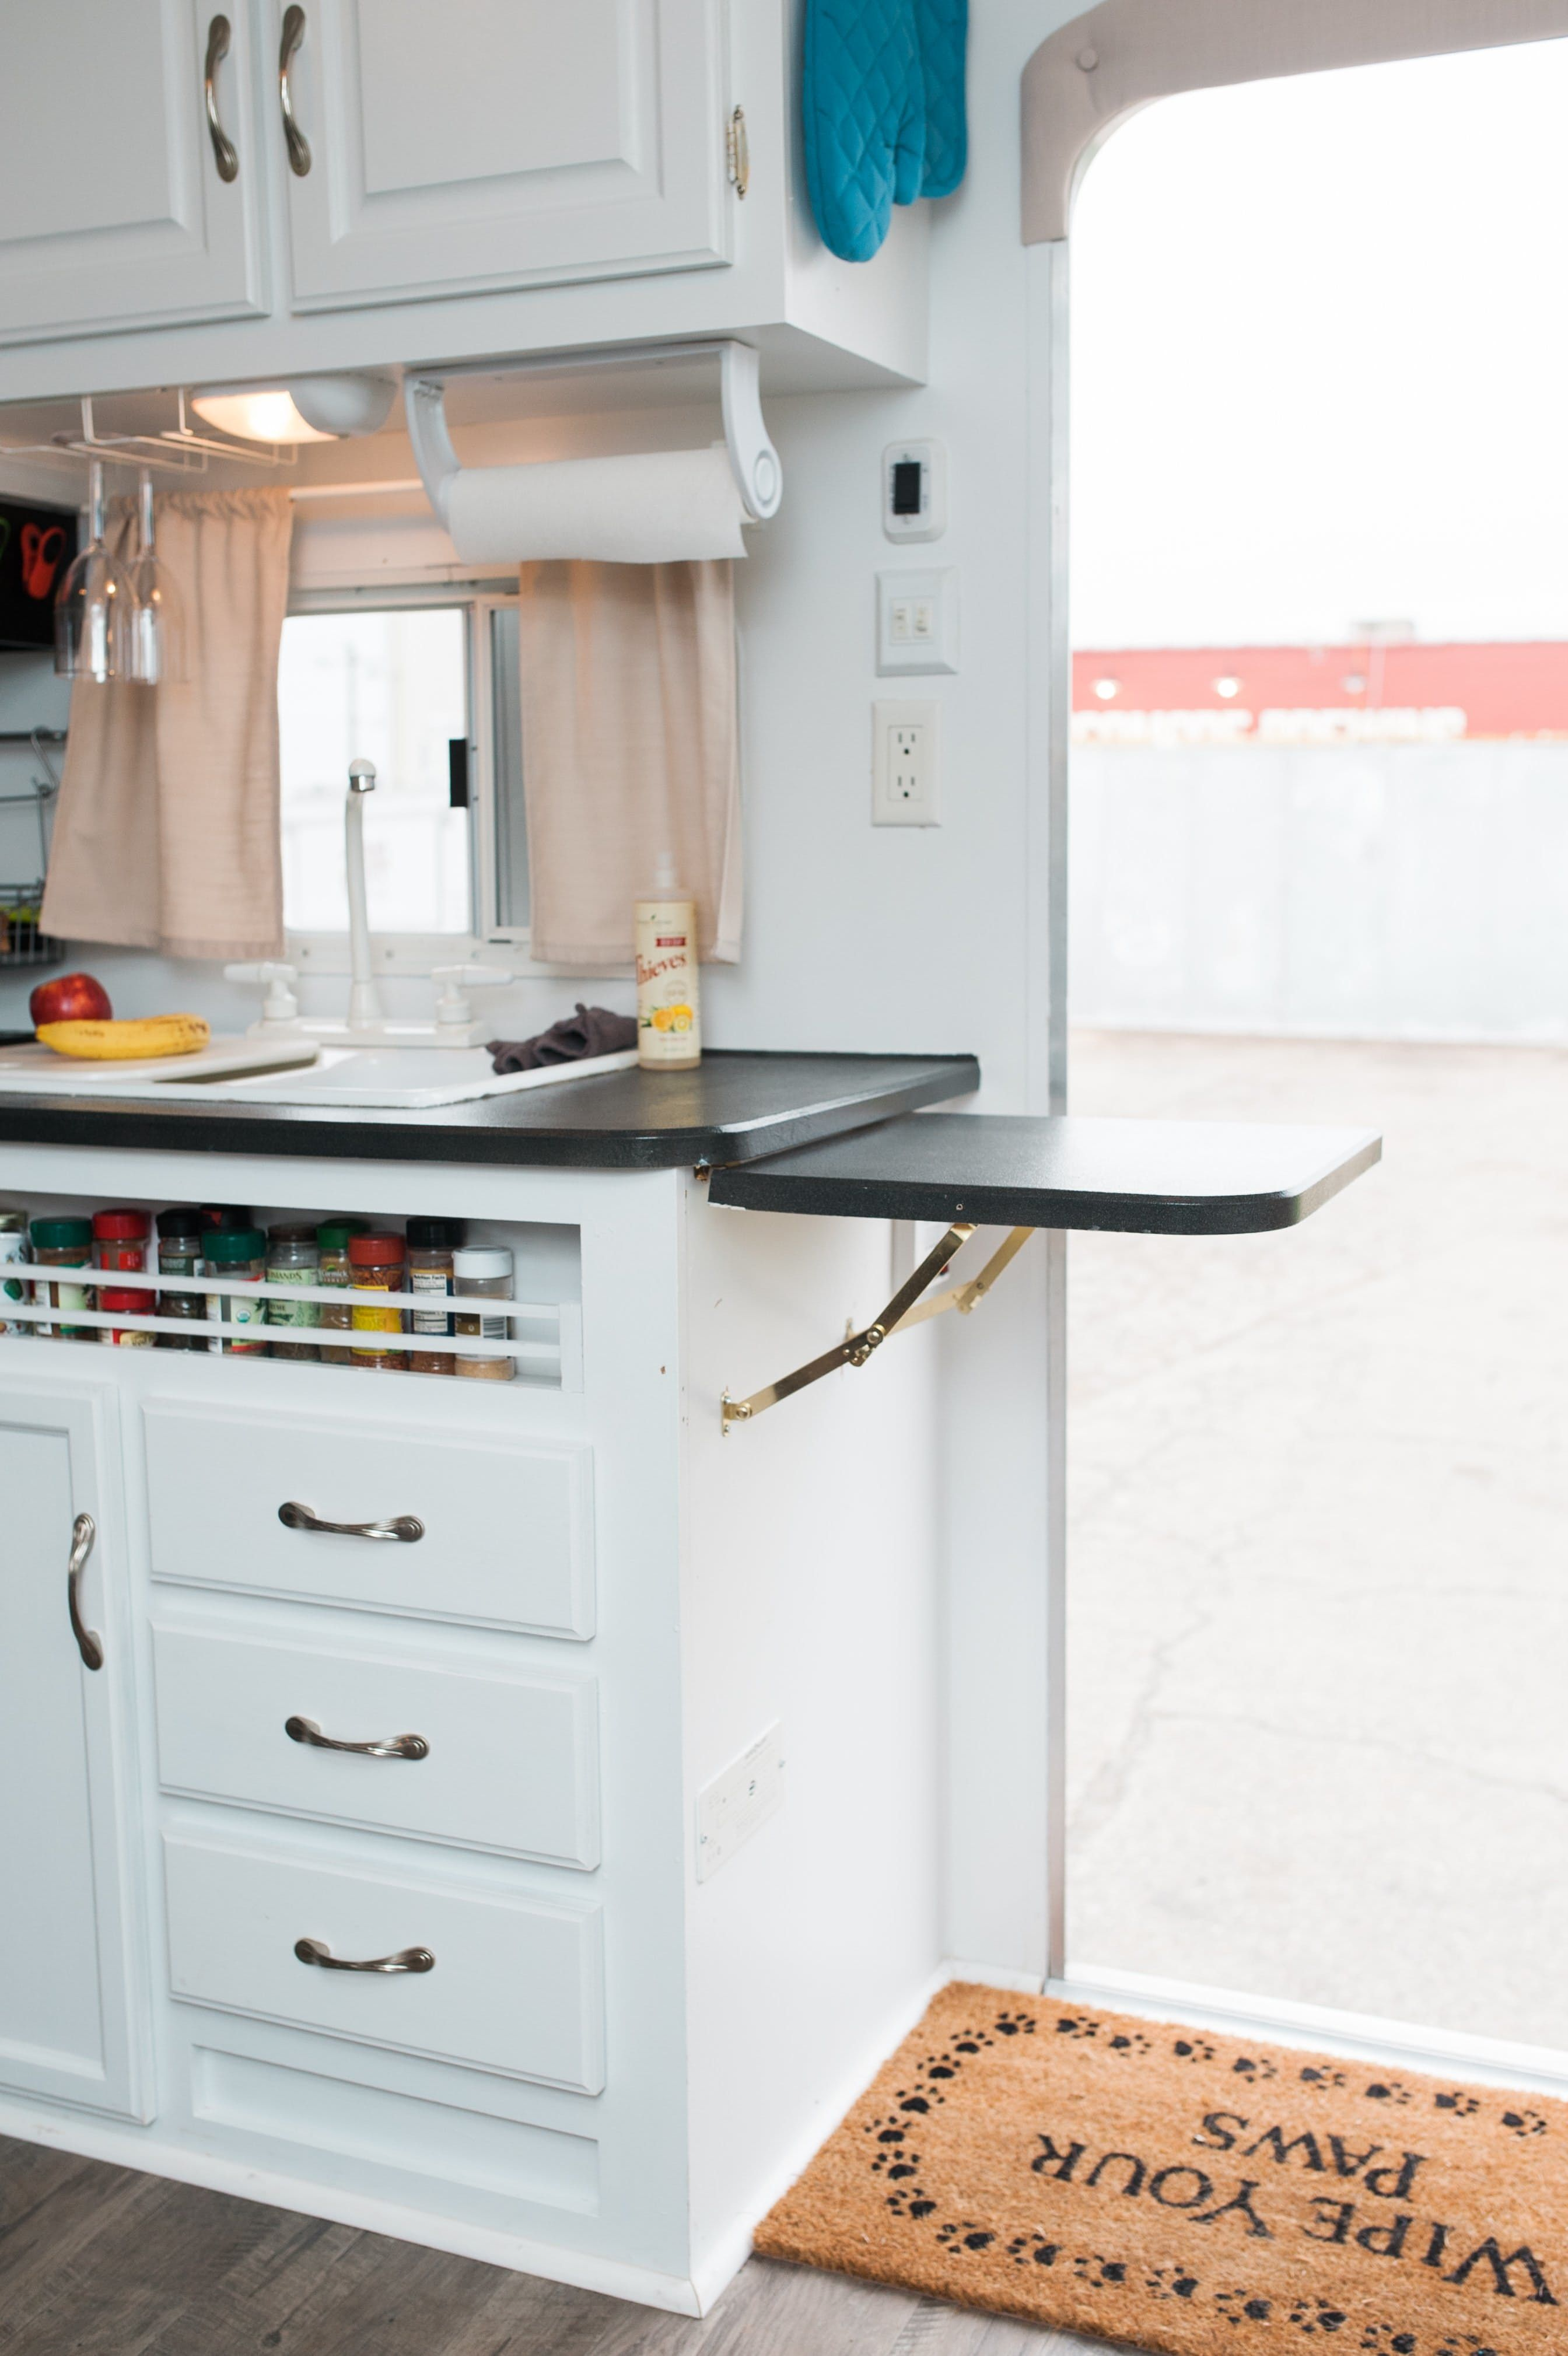 Small Space Solutions from Campers + Trailers | Pinterest | Kitchens ...